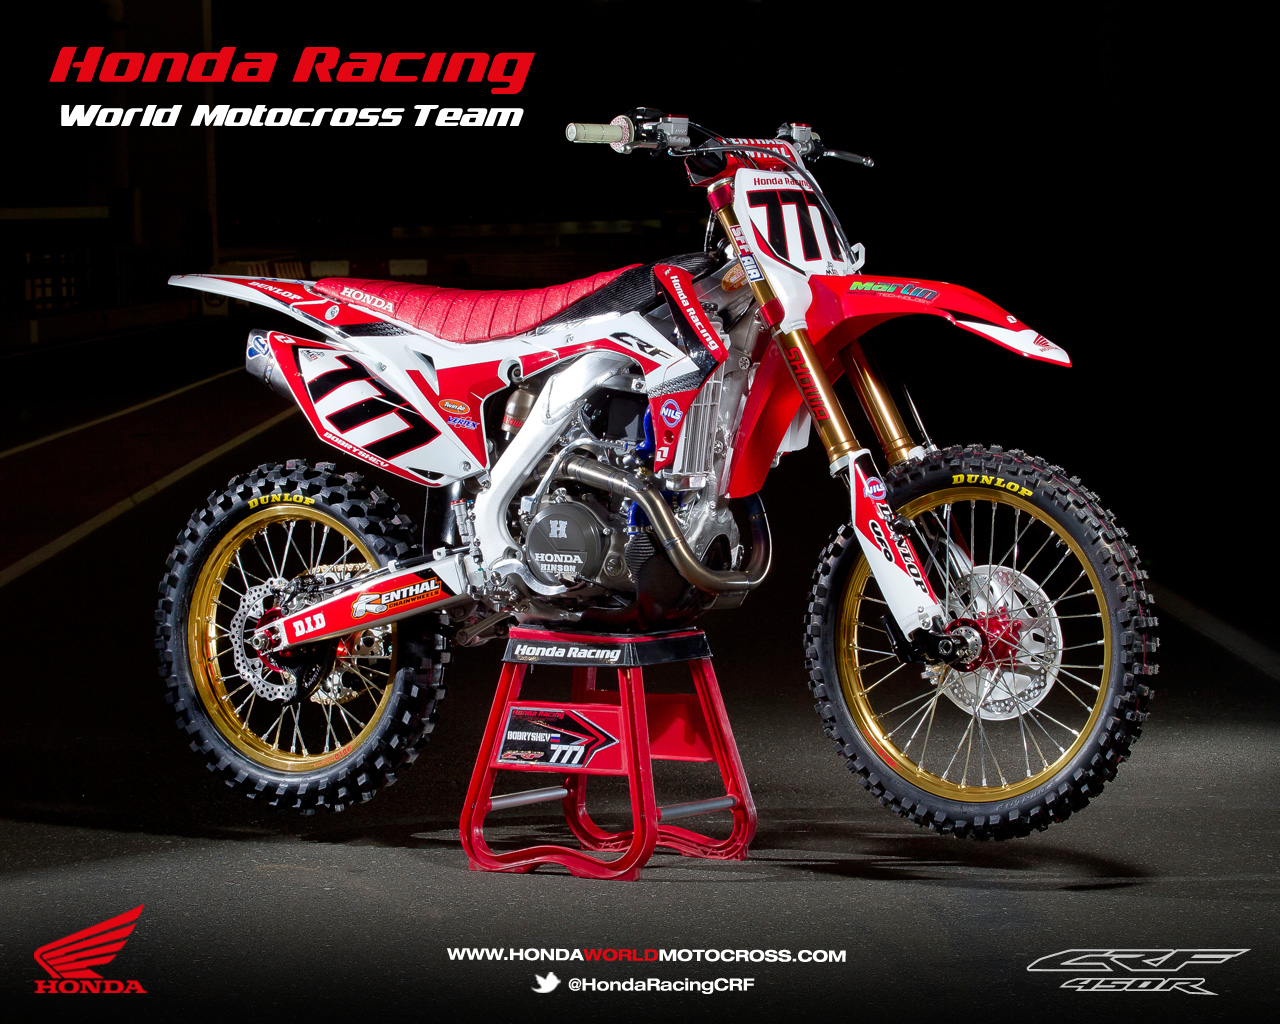 racing caf honda crf 450r world motocross team 2013. Black Bedroom Furniture Sets. Home Design Ideas